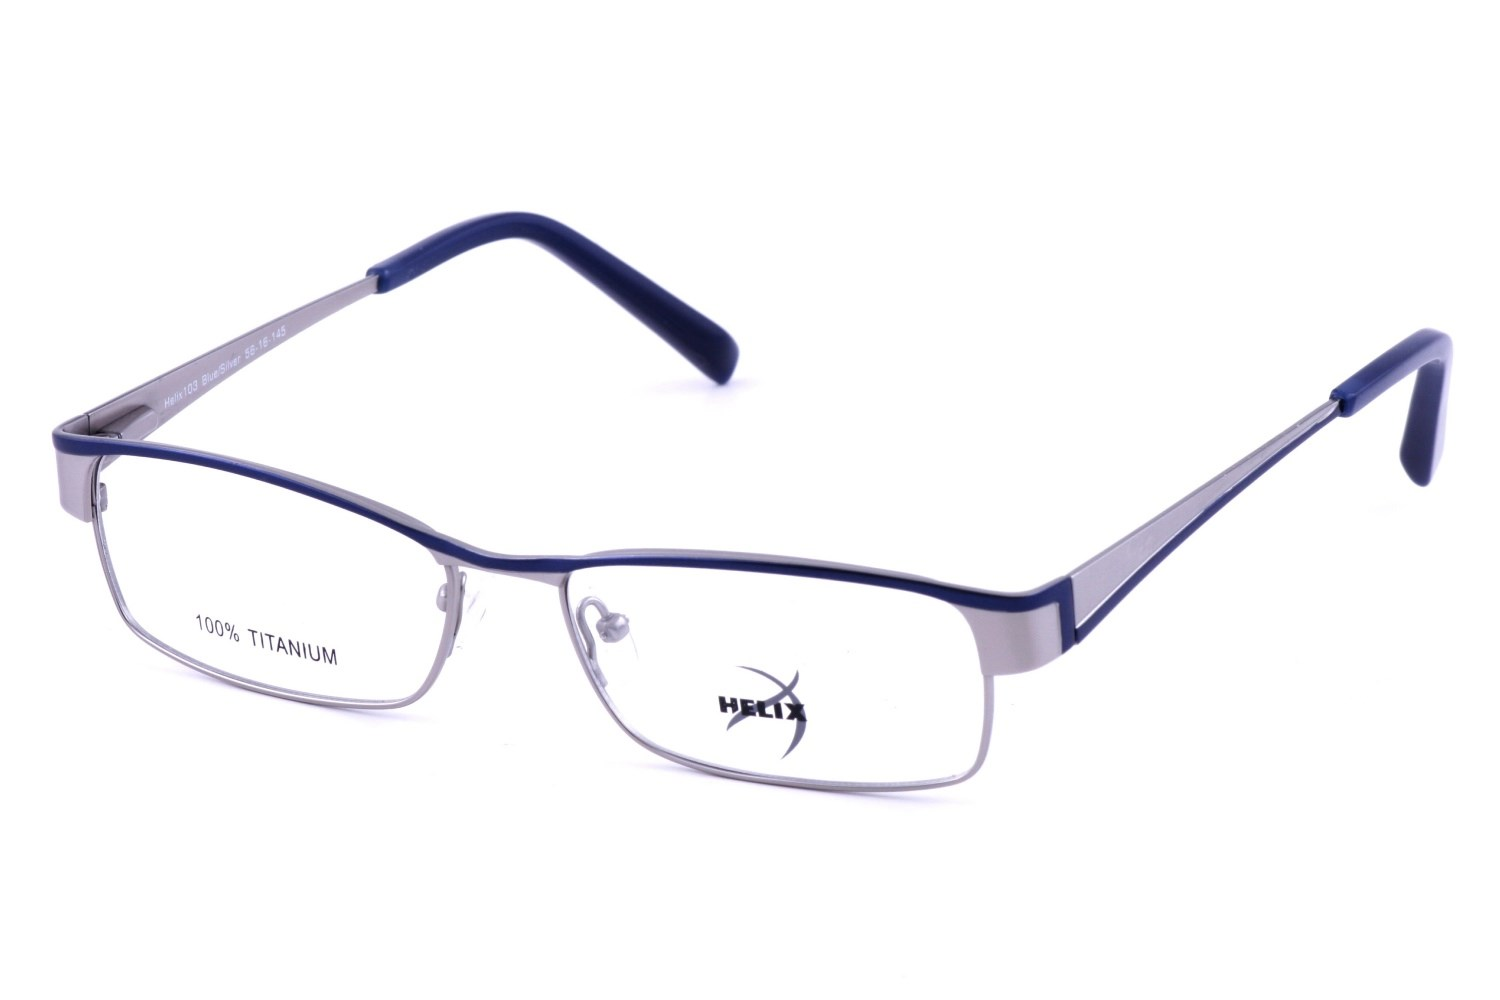 Helix 103 Prescription Eyeglasses Frames